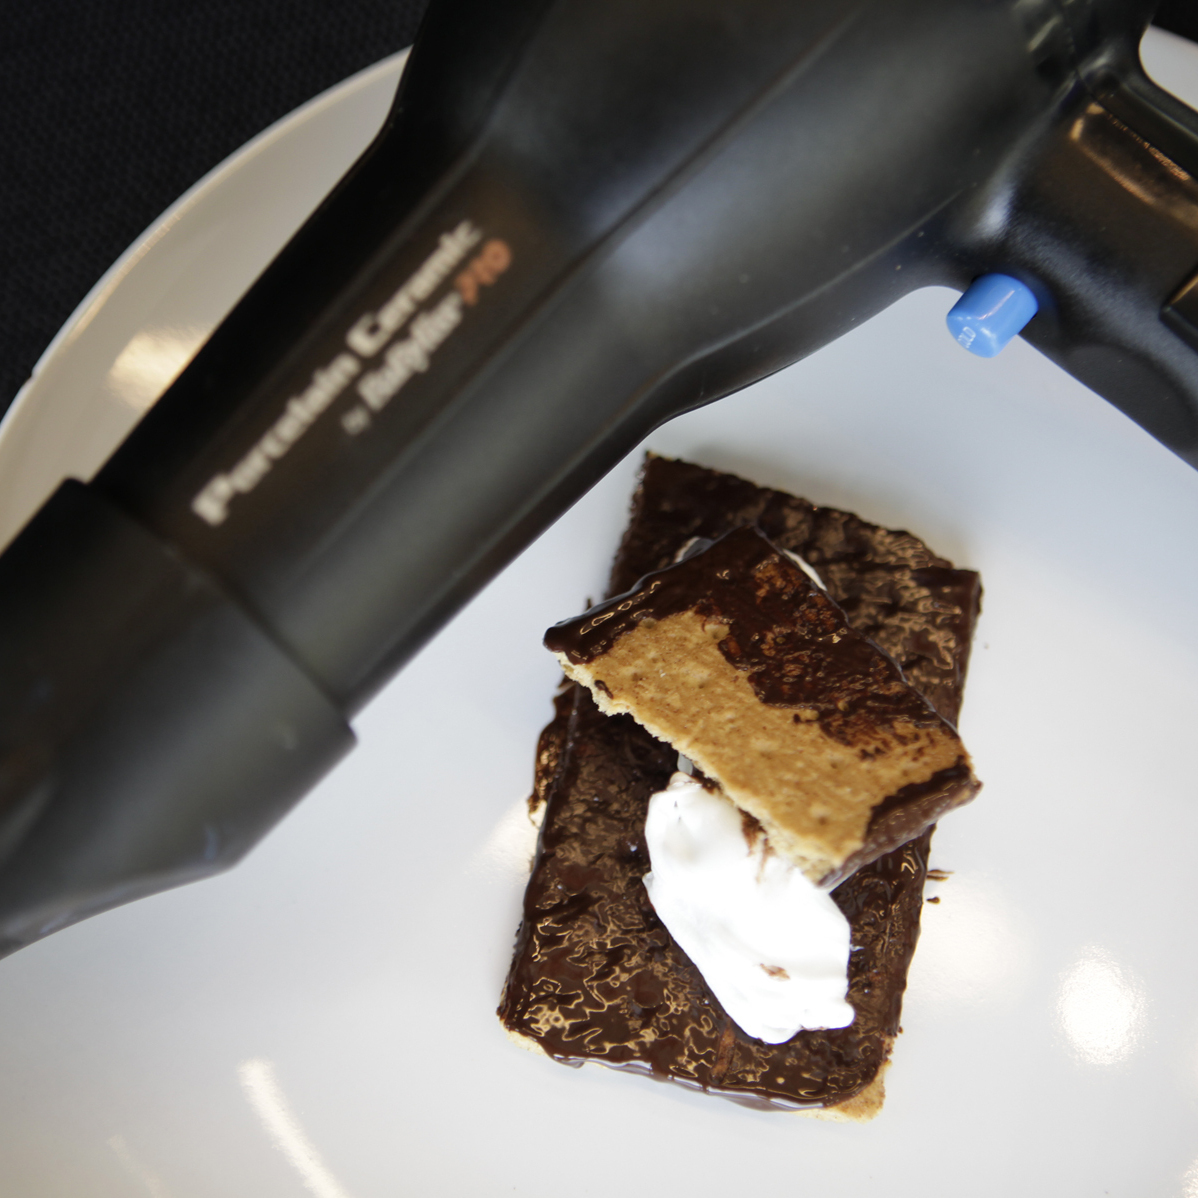 Not just for straightening curls, the hair dryer can also make a killer s'more.